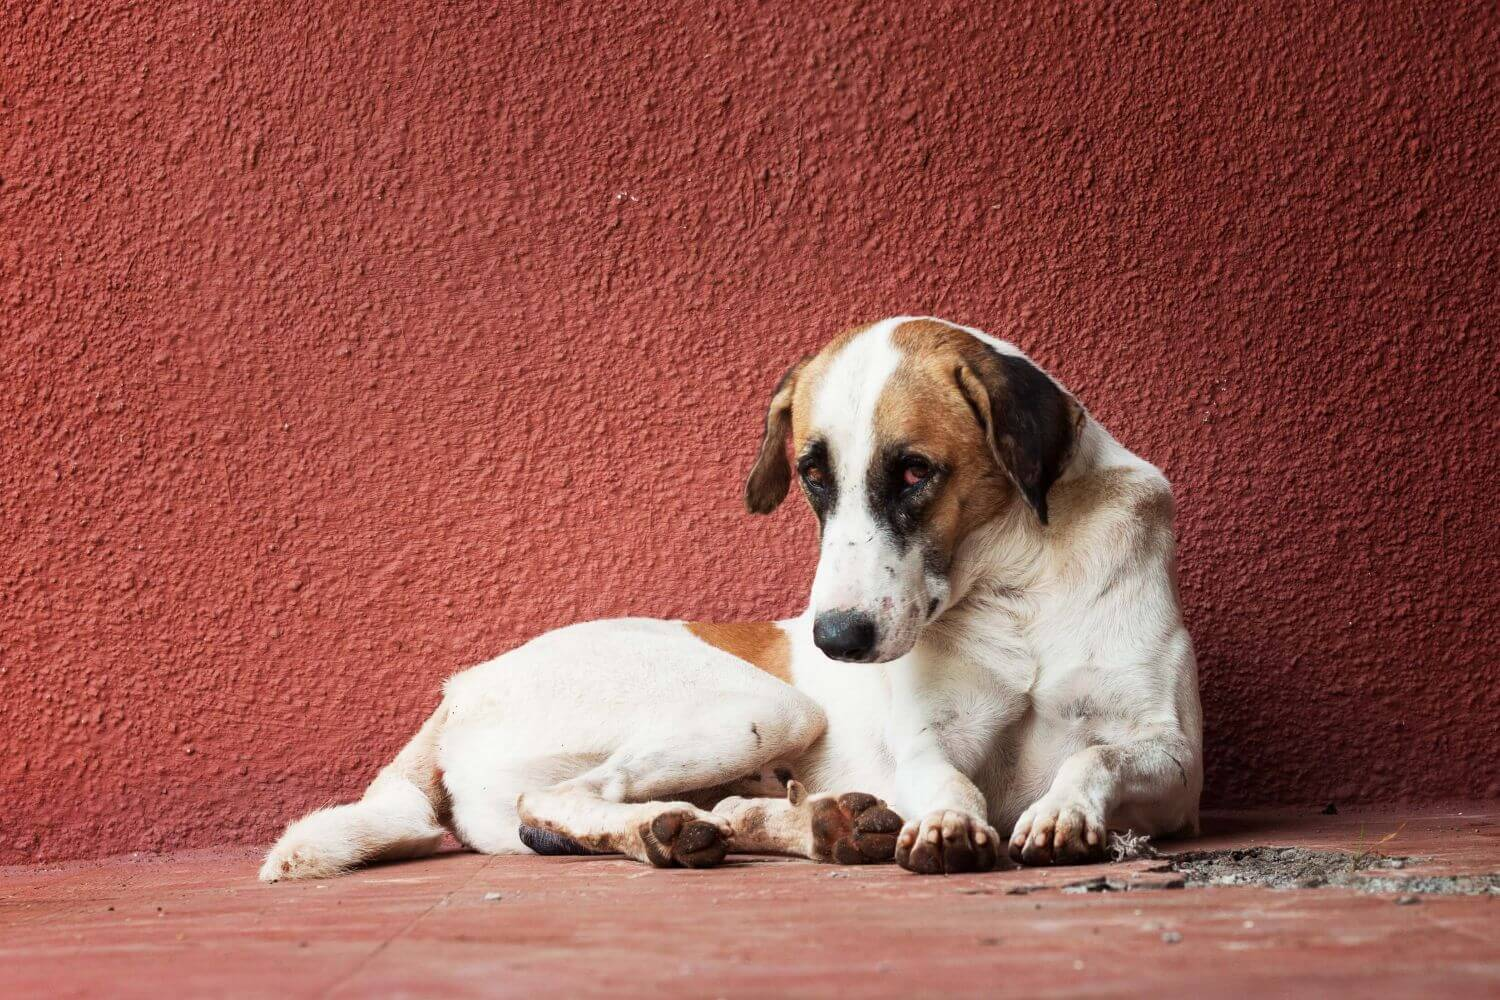 How to clean and care for a dog's wound